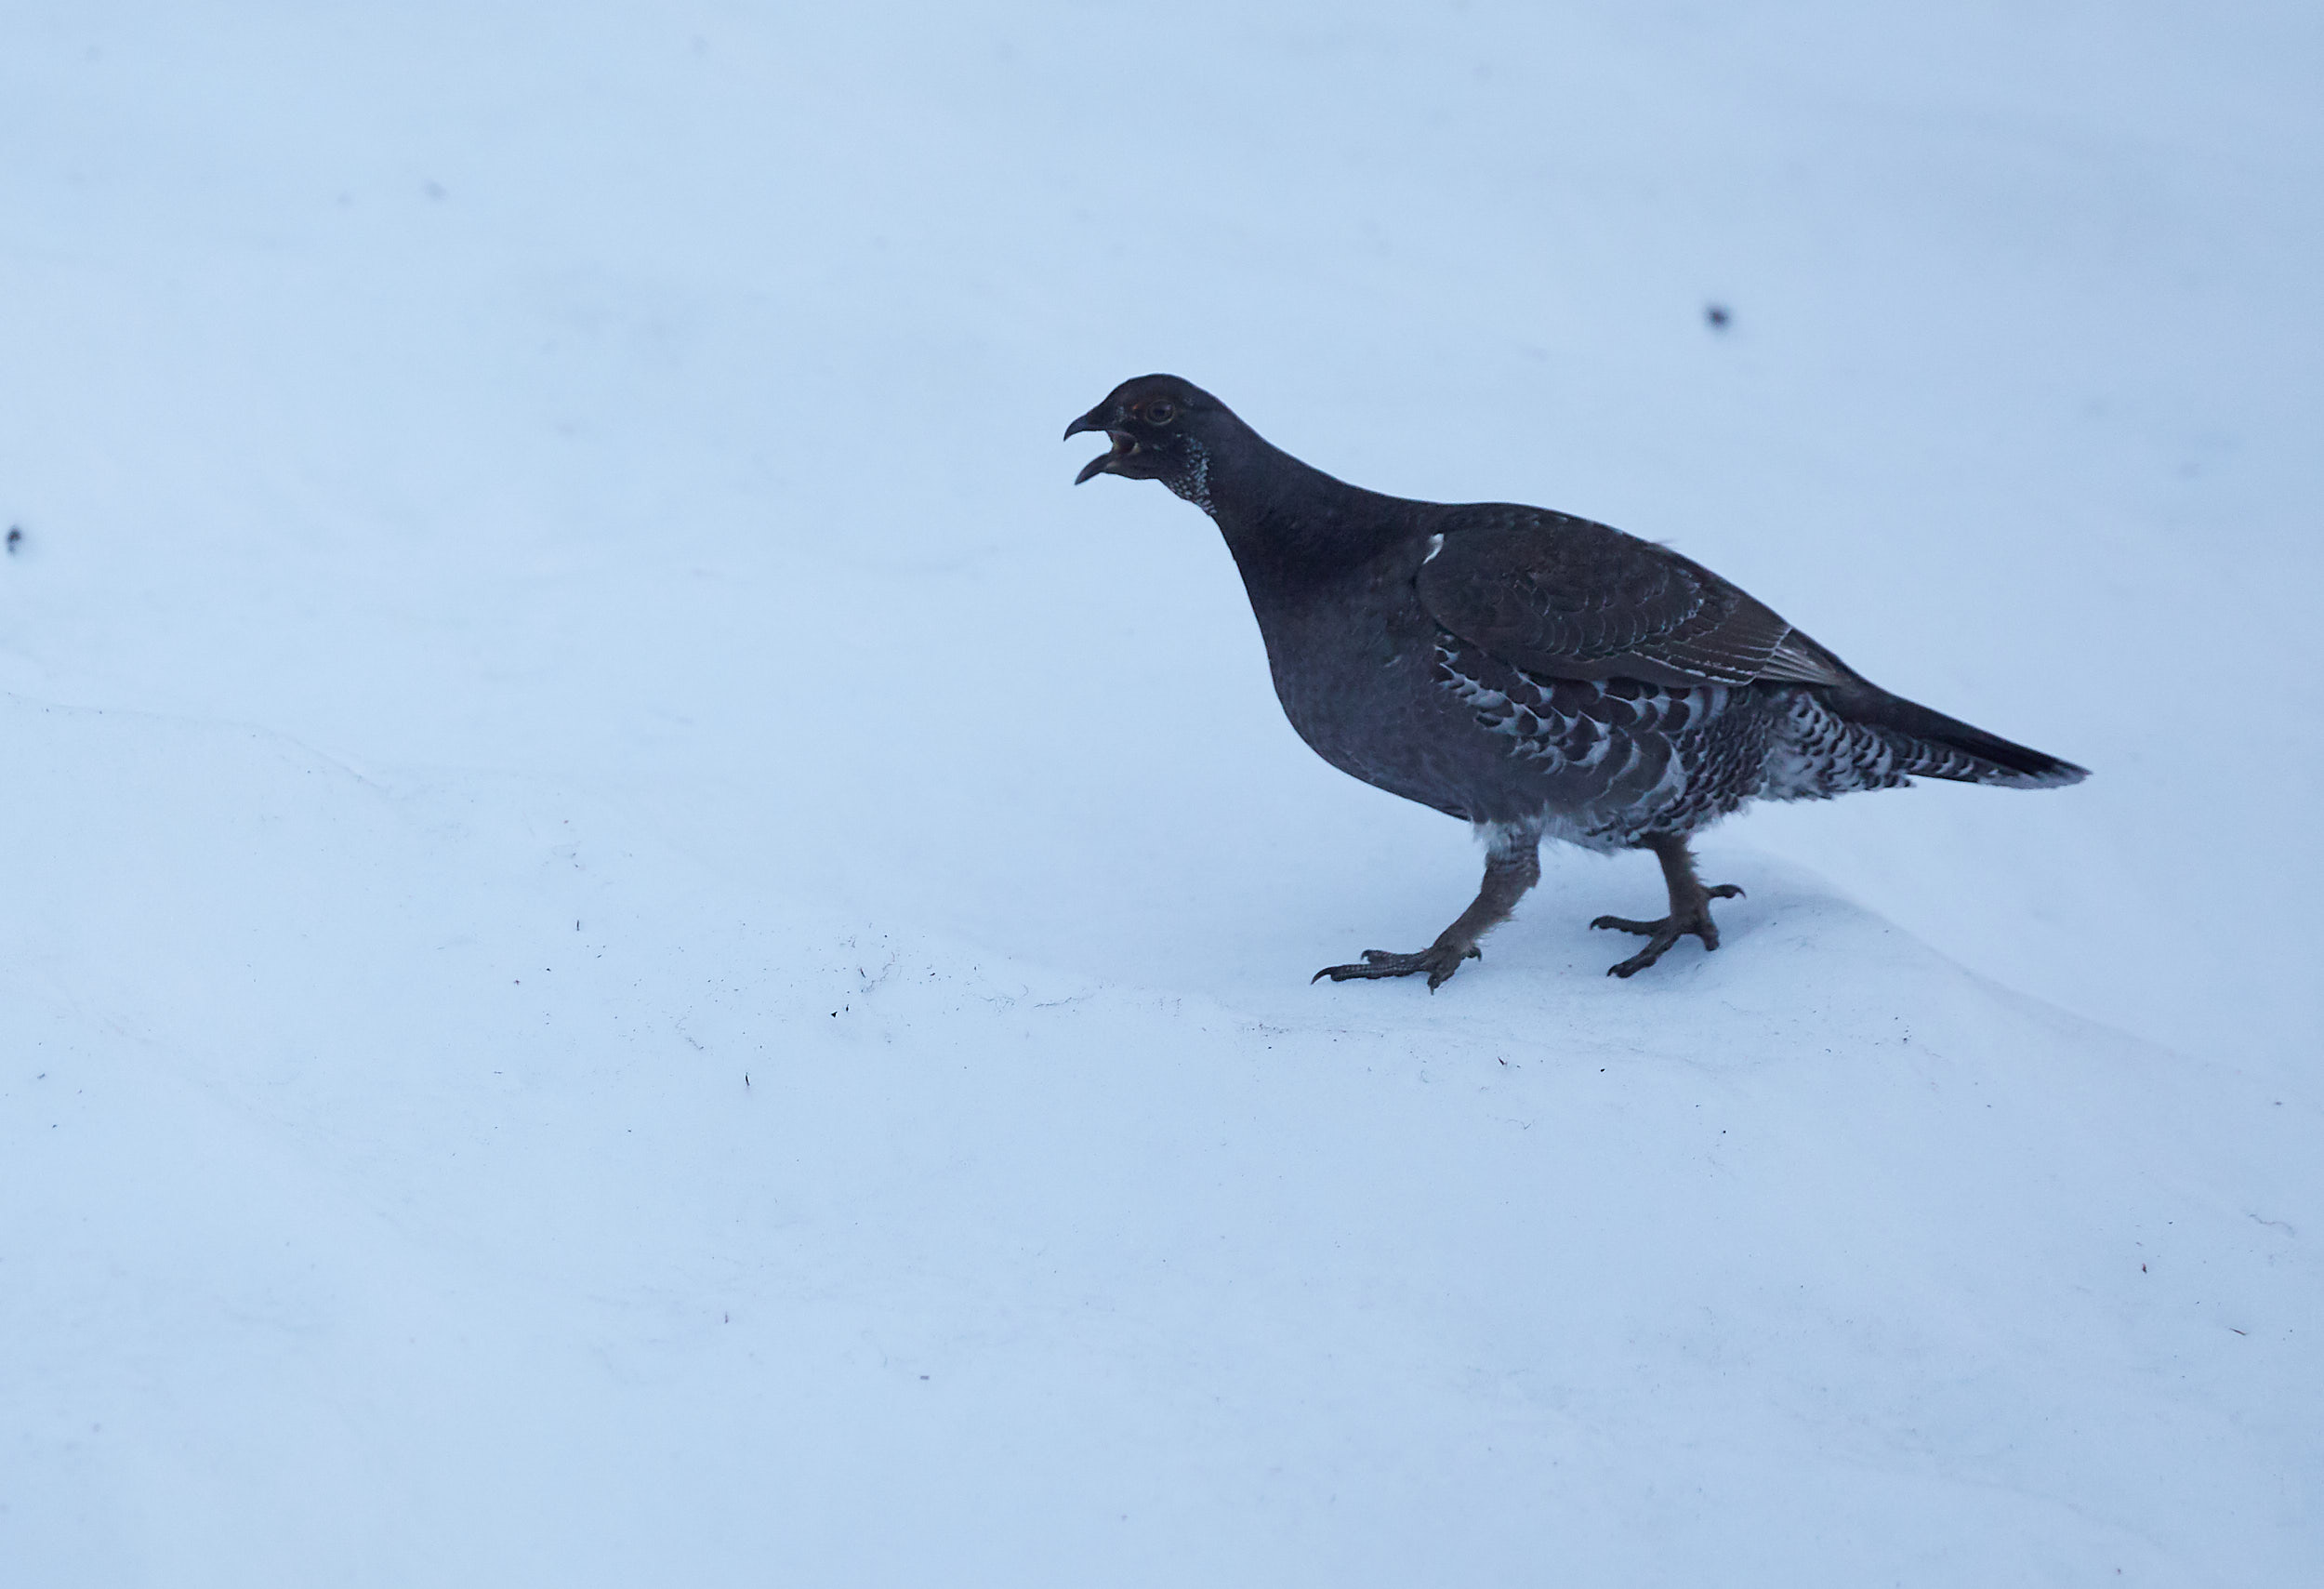 We came across this funny little bird running along the trail with us. I believe it was a Ptarmigan.